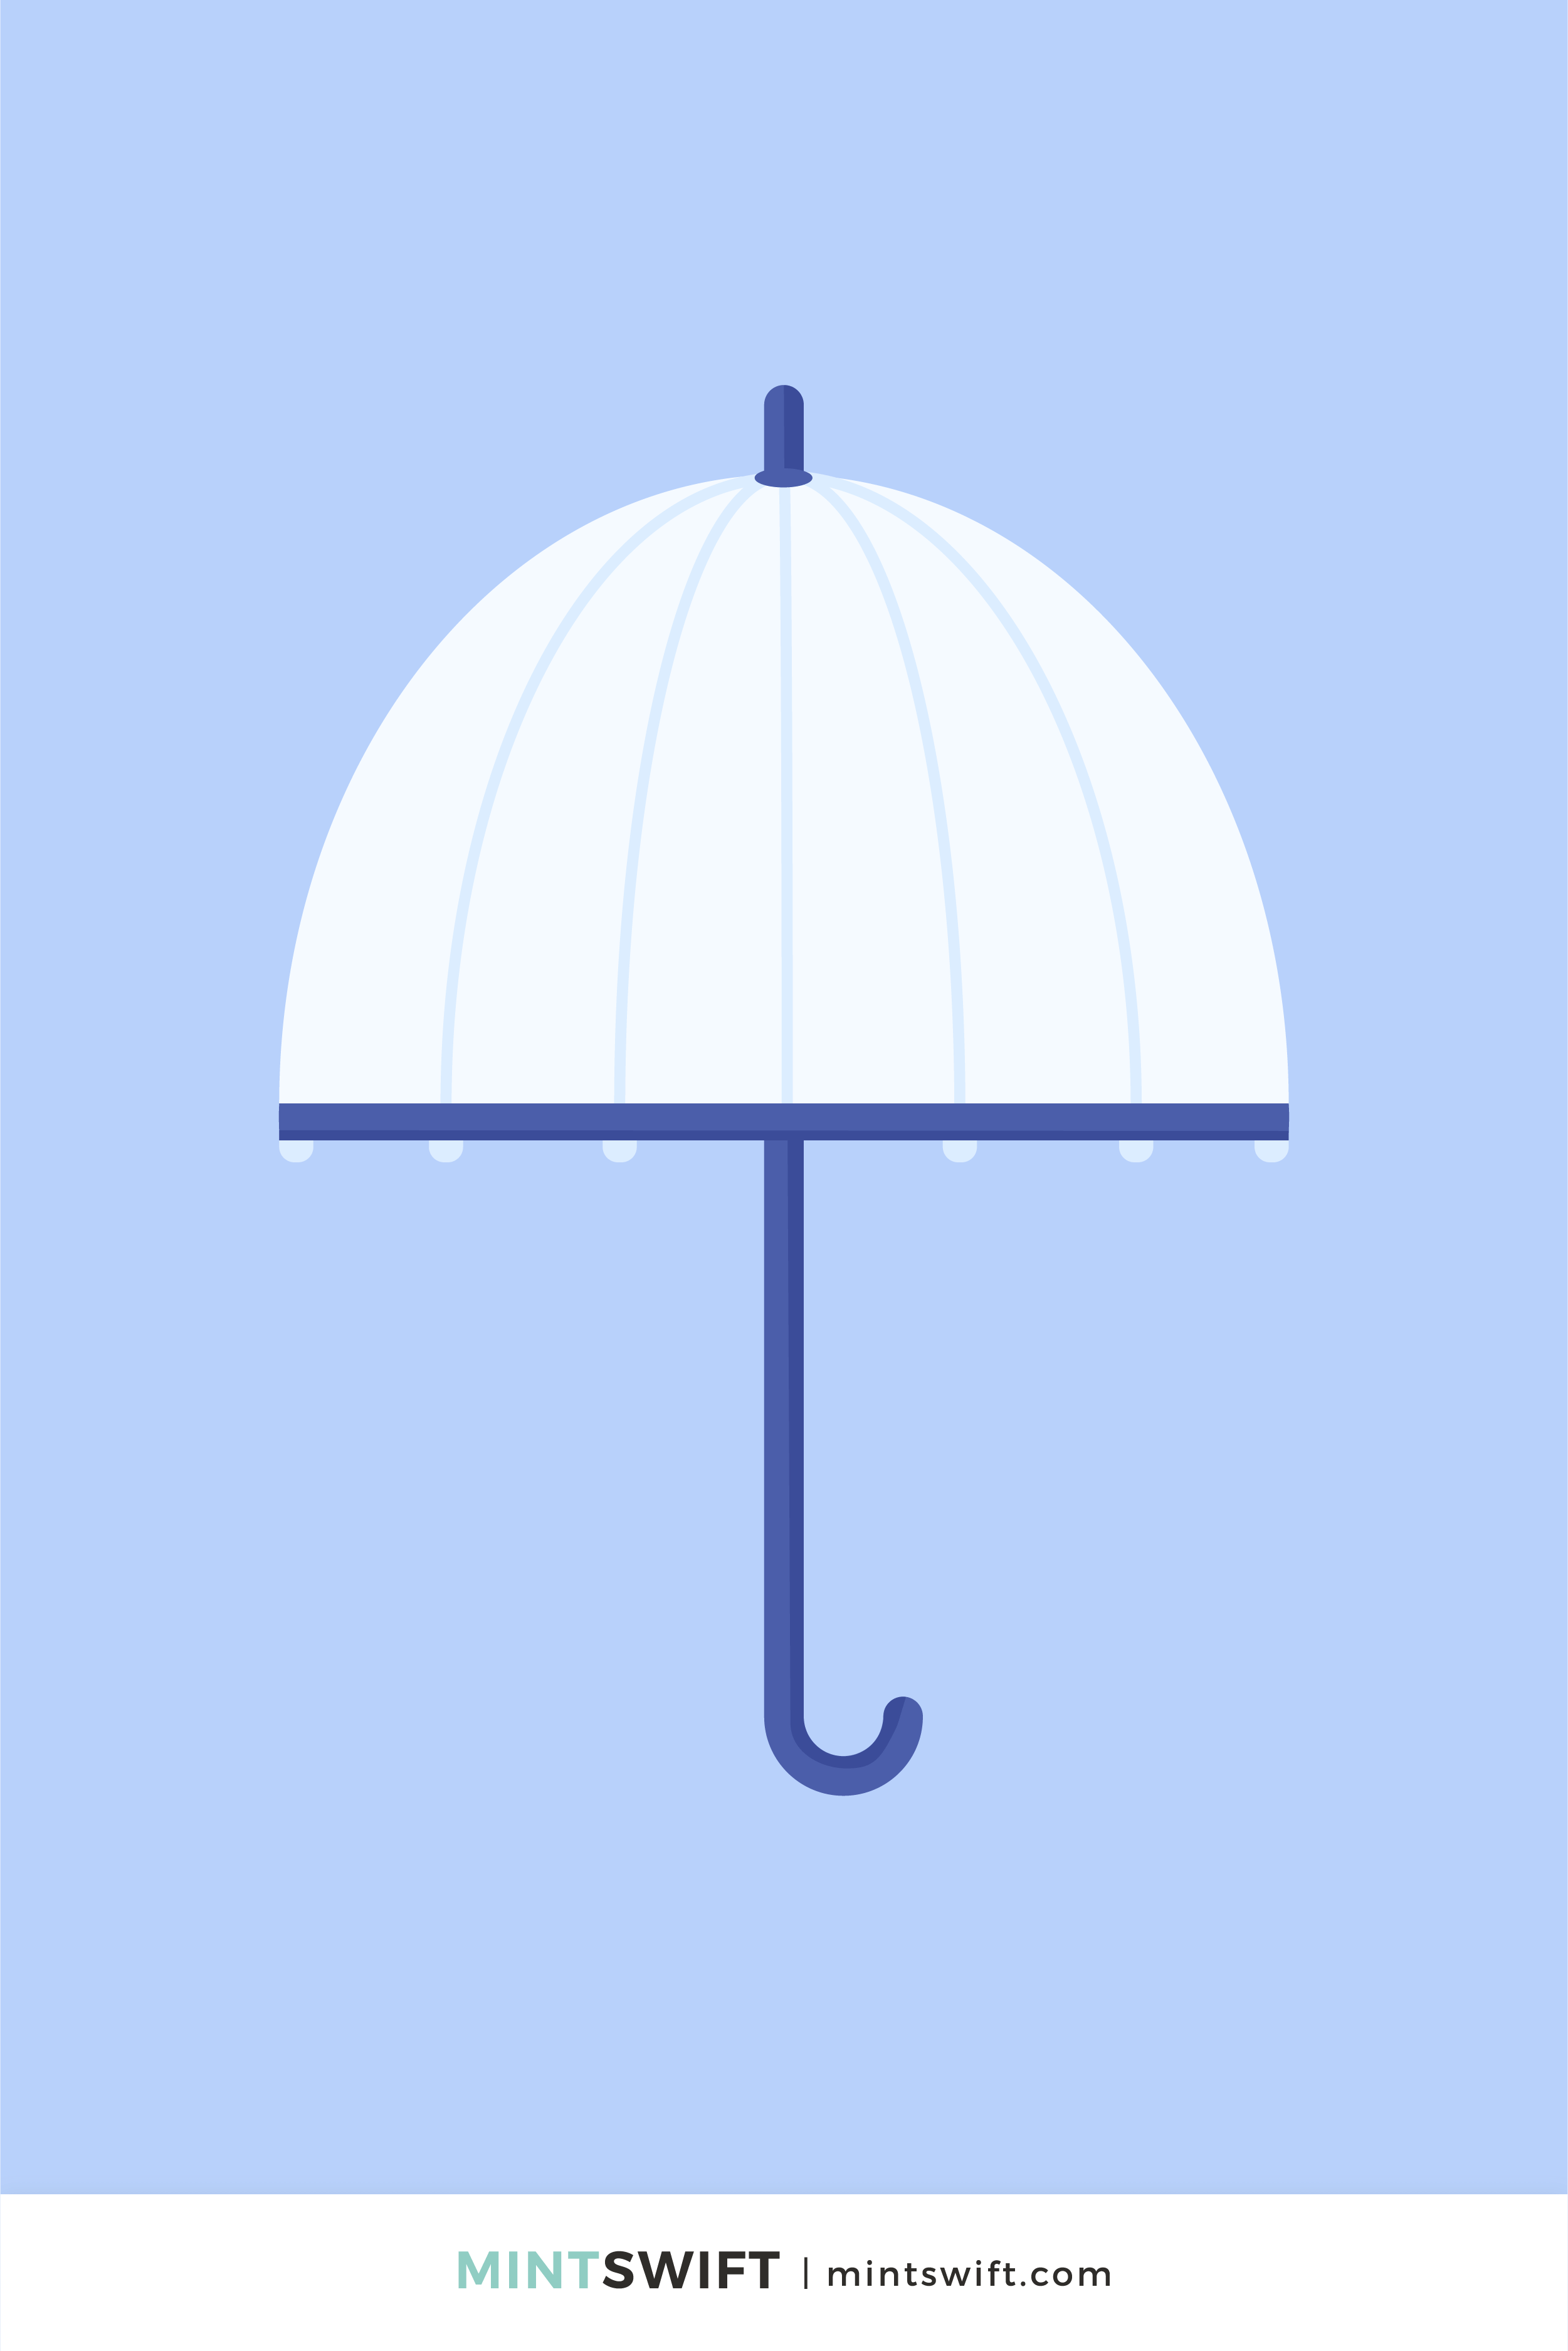 Vector illustration of Queen's Fulton umbrella in flat design style. Transparent domed umbrella drawing with navy blue handle and light purple background